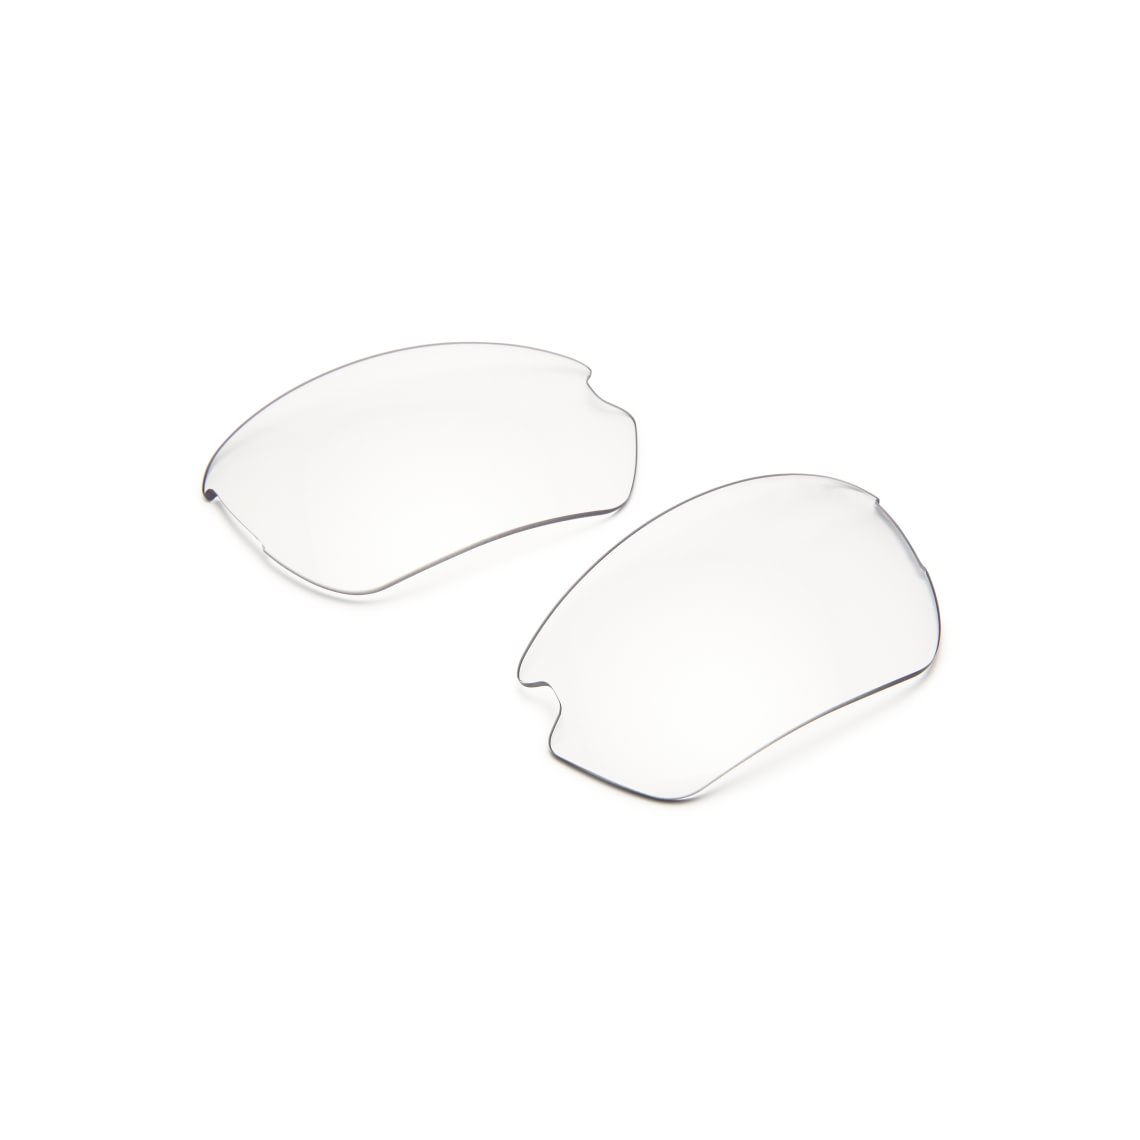 RIGEL Champ Spare Lenses Photochromic